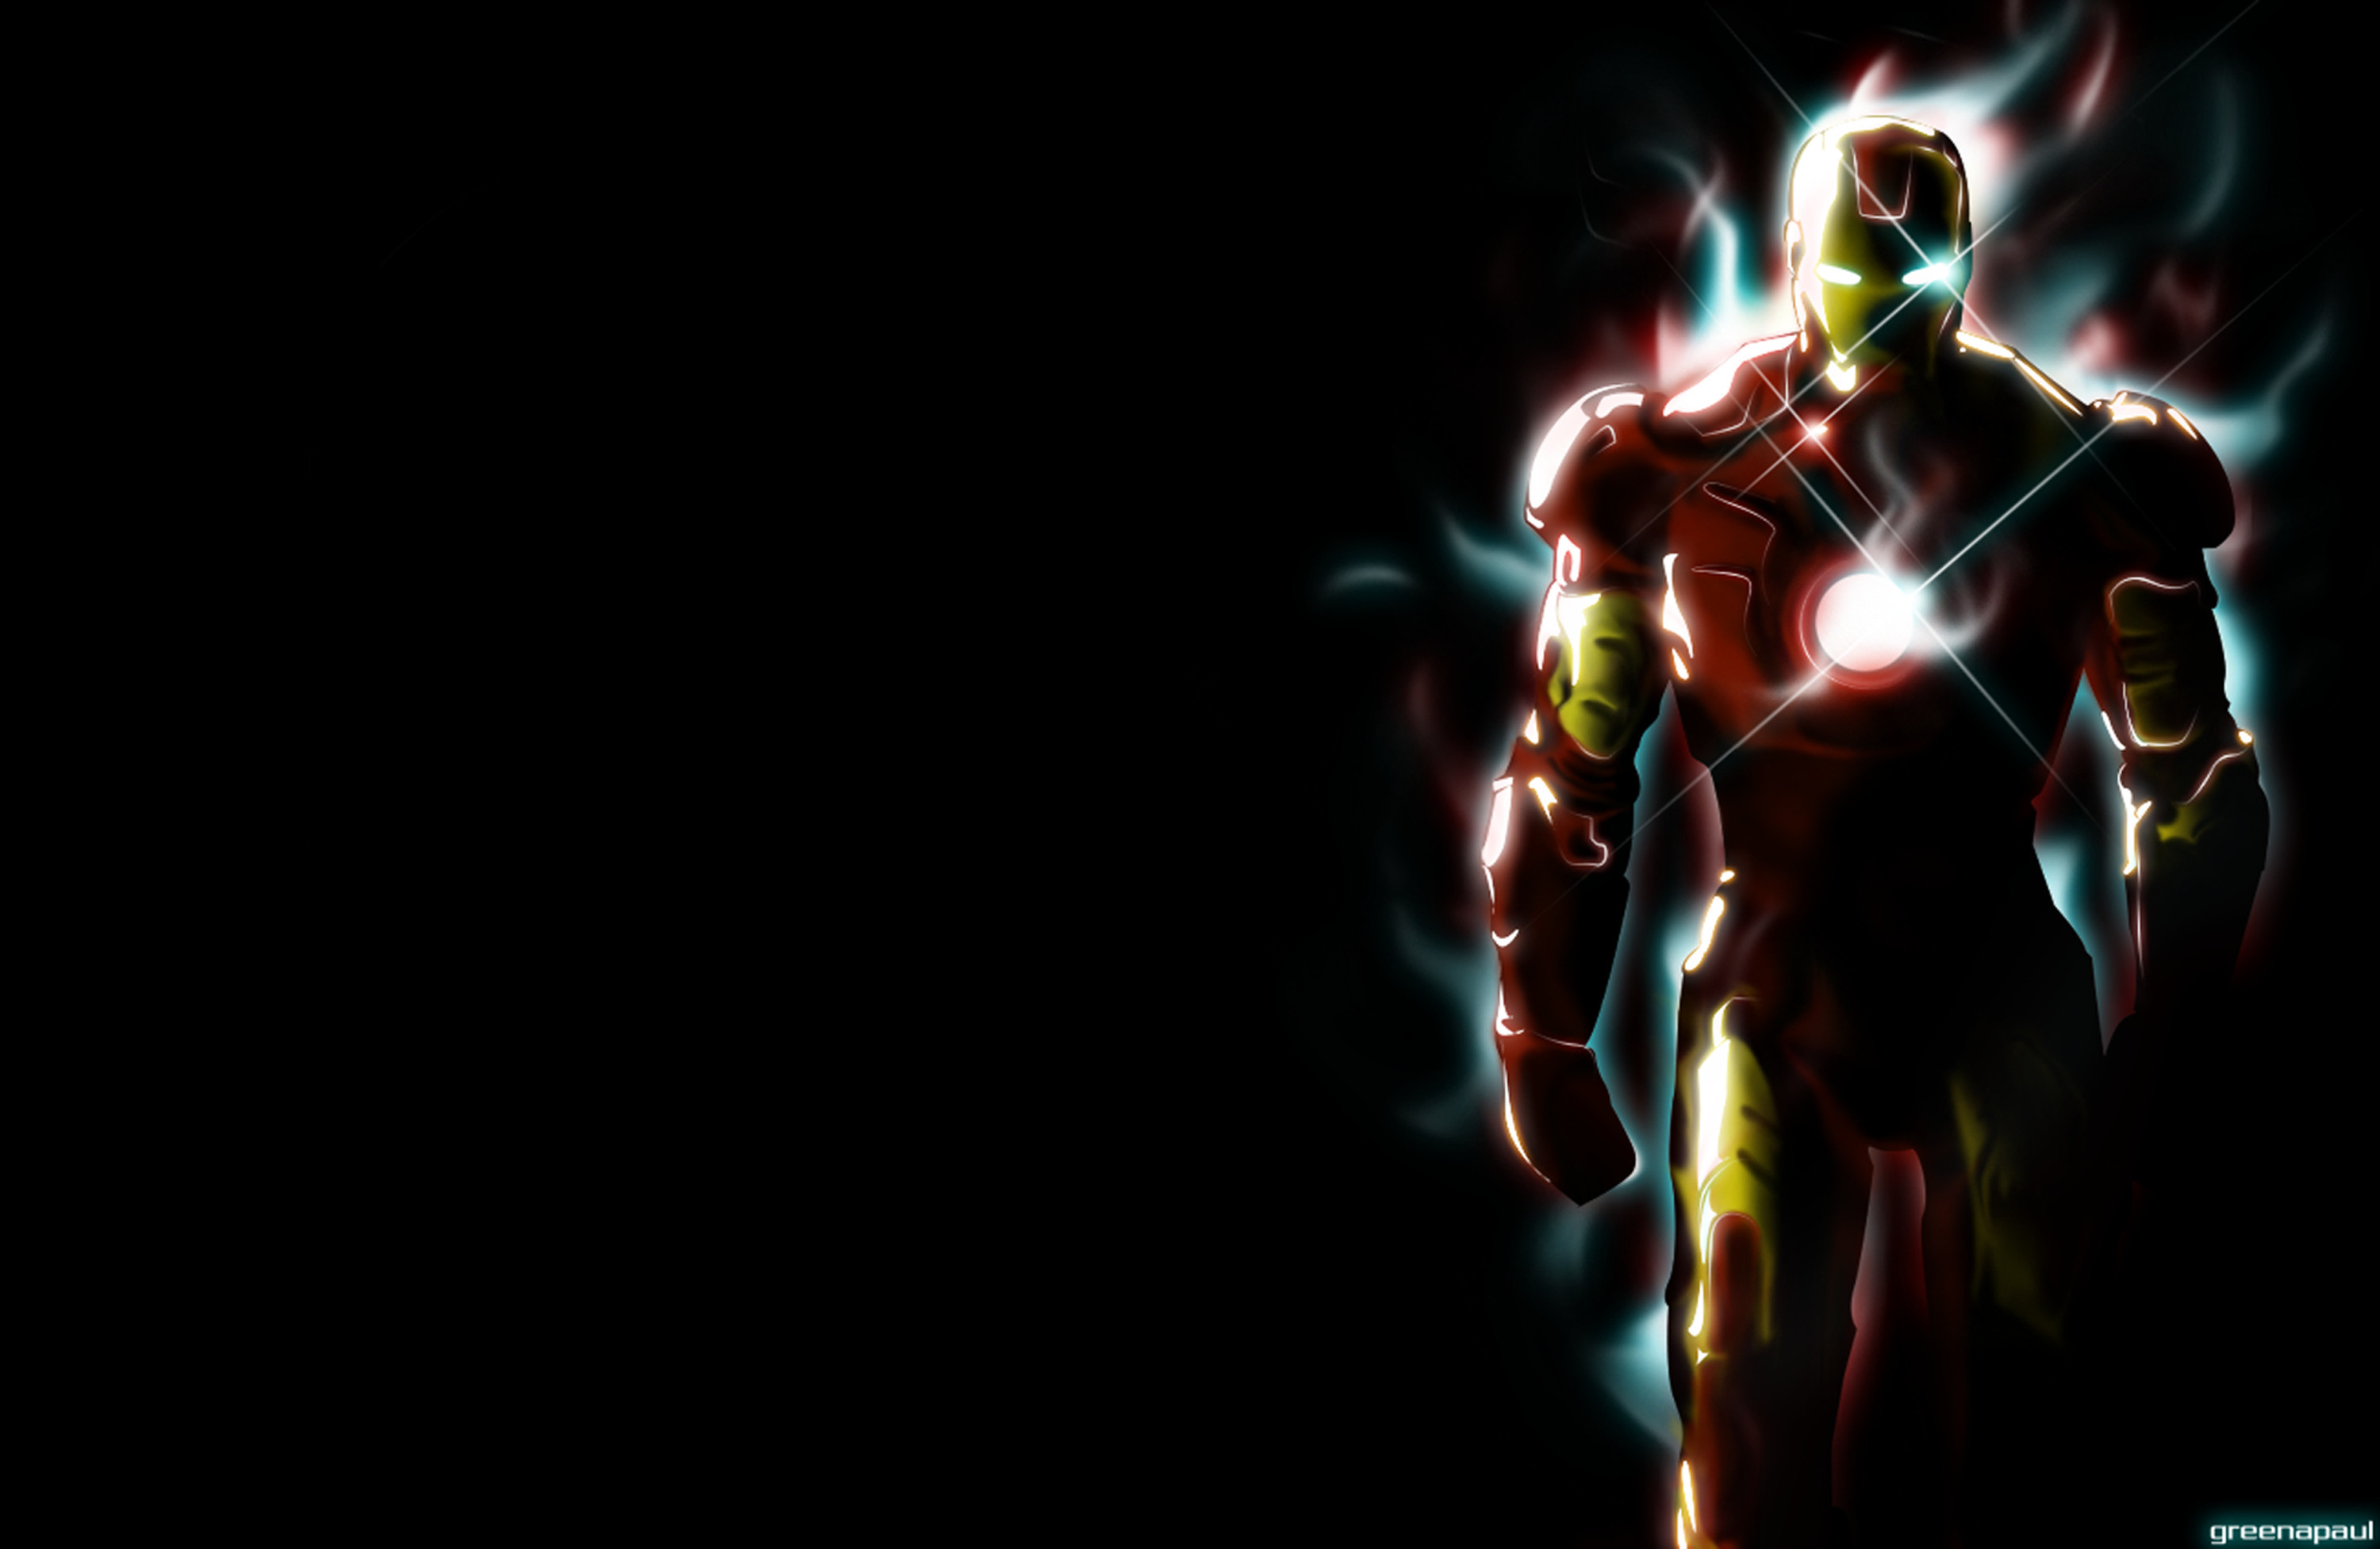 140 Iron Man Hd Wallpapers 1080p